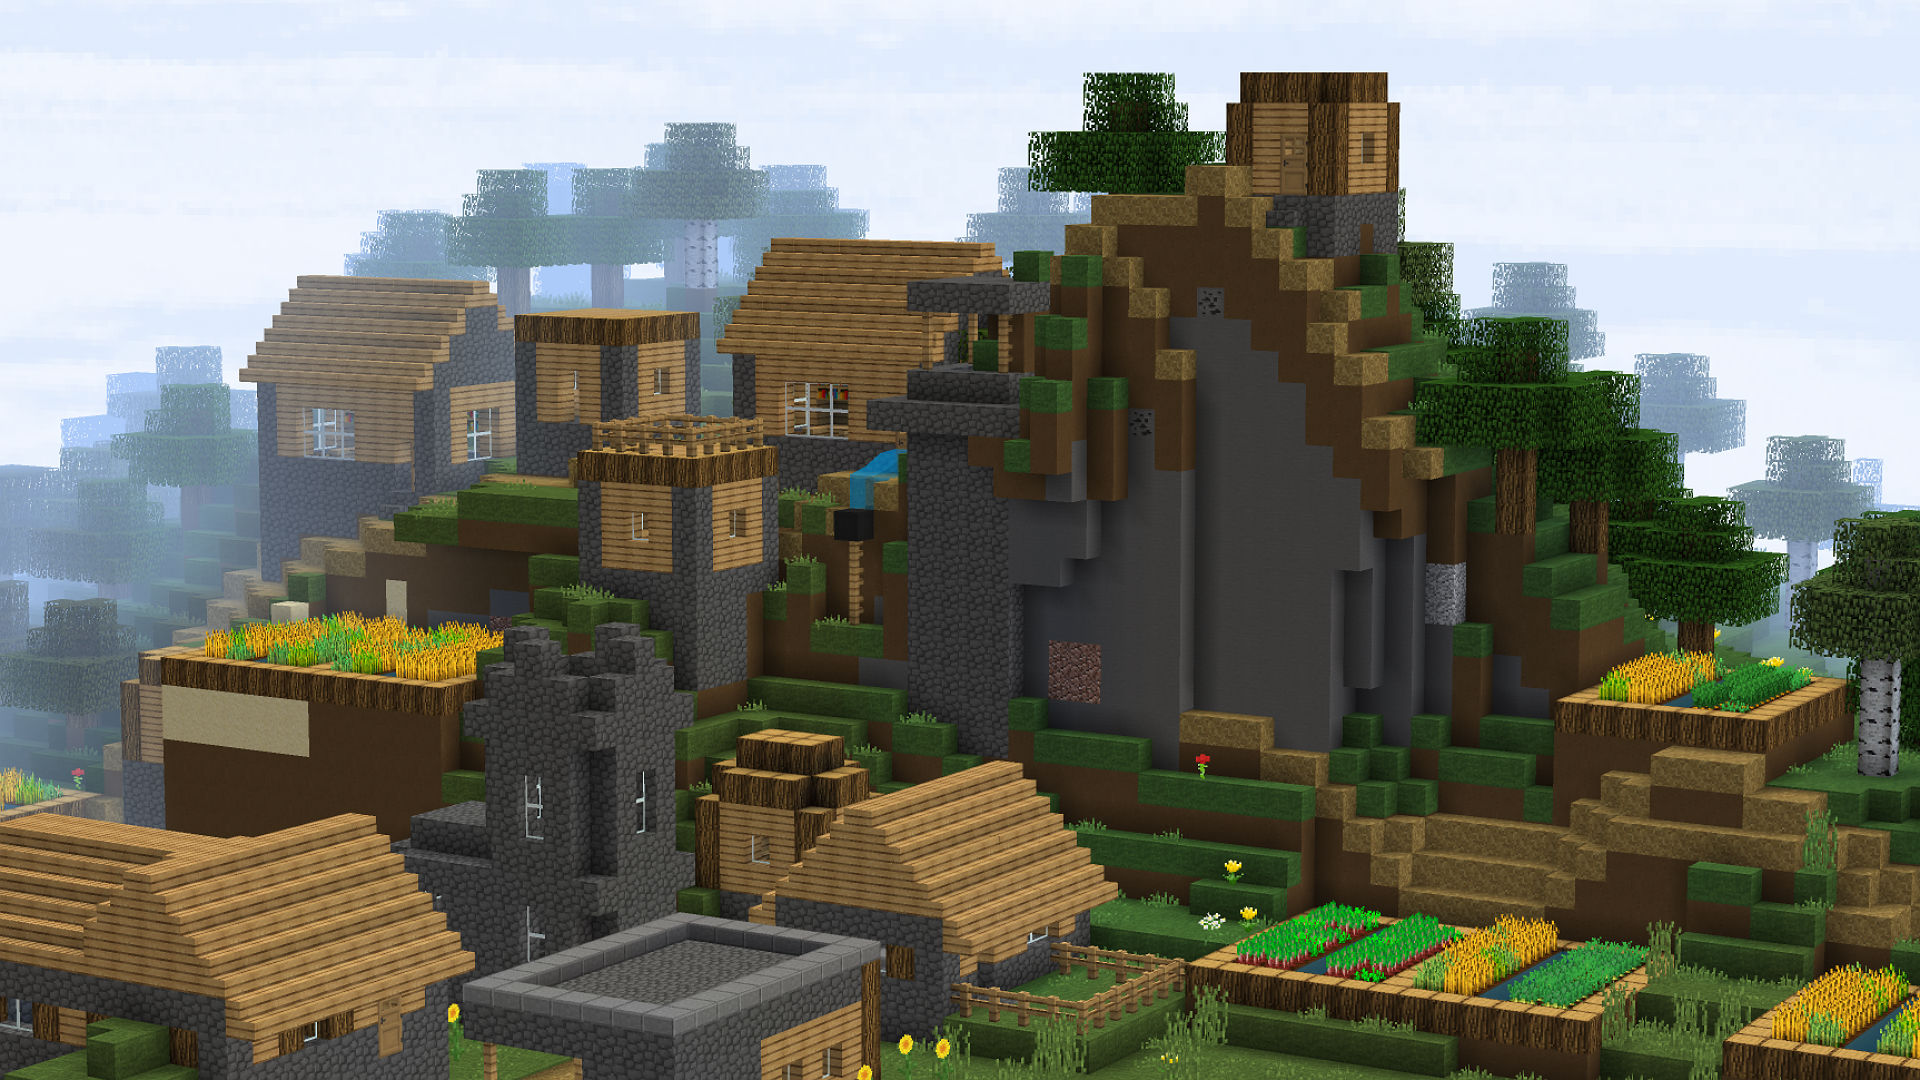 What Are The Important Facts About Minecraft Servers?